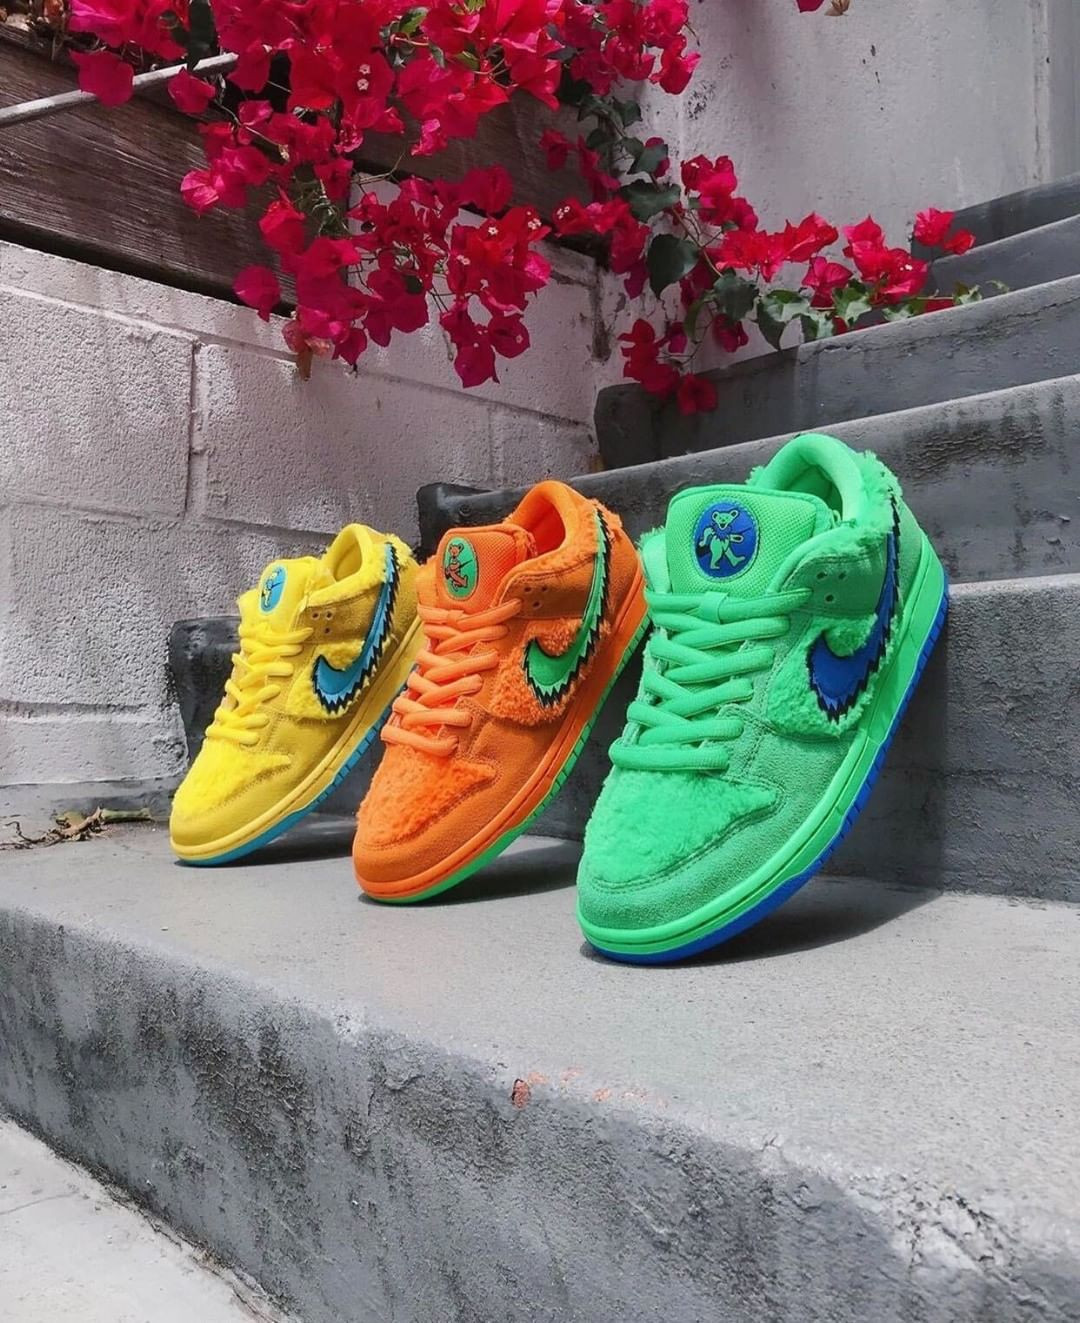 Nike SB Dunk Low Grateful Dead Opti Yellow, Bears Green e Bears Orange